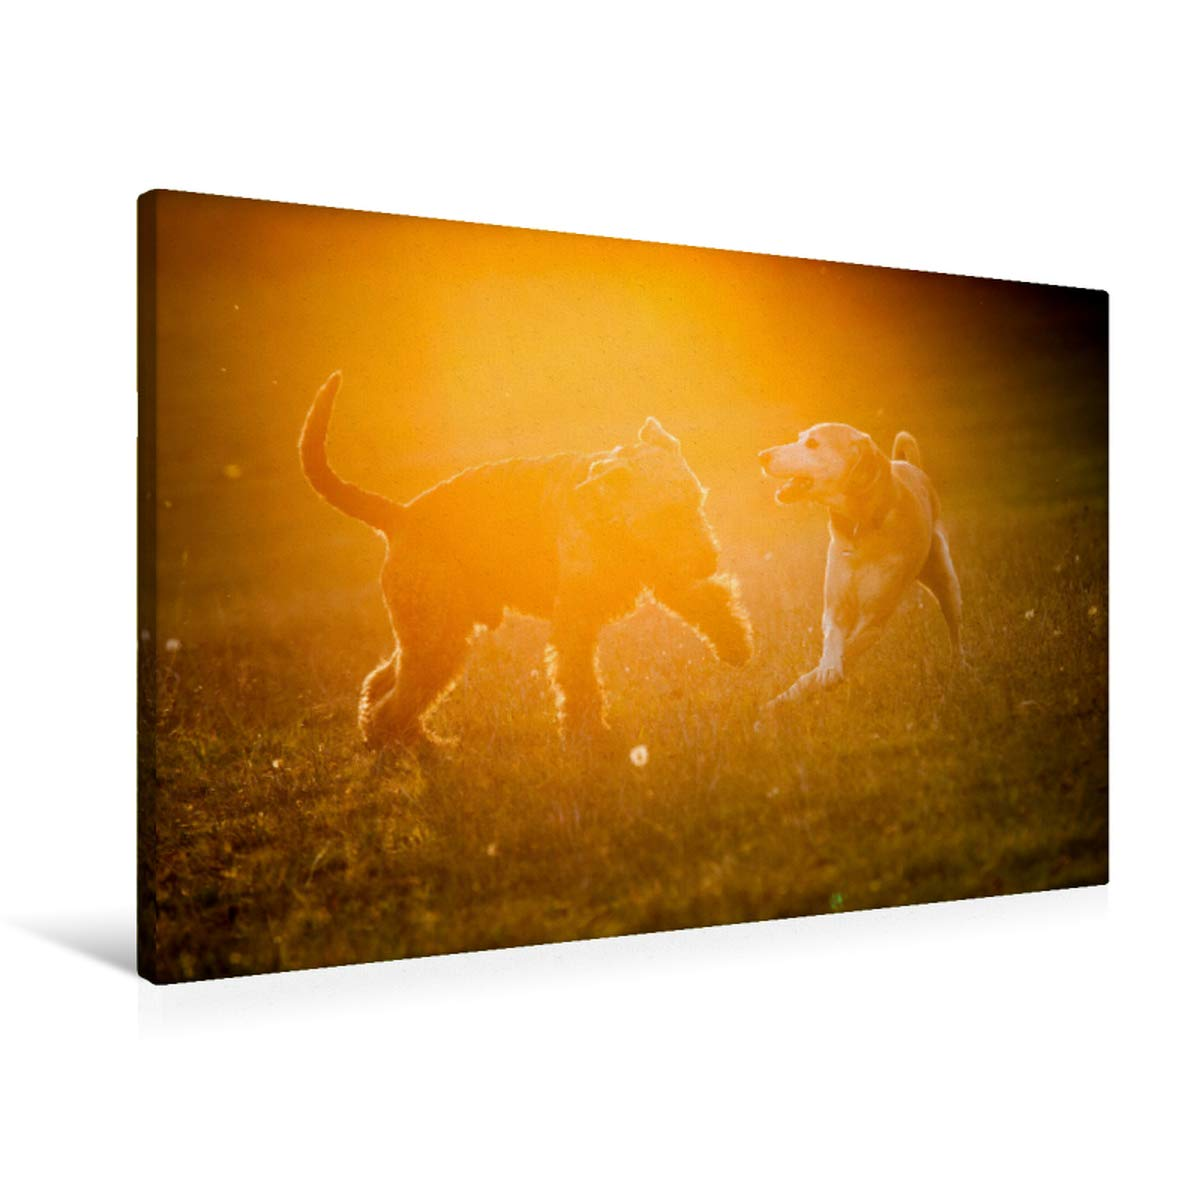 90x60 Premium Textile Canvas 75 x 50 cm CrossPlaying Dogs at Sunset